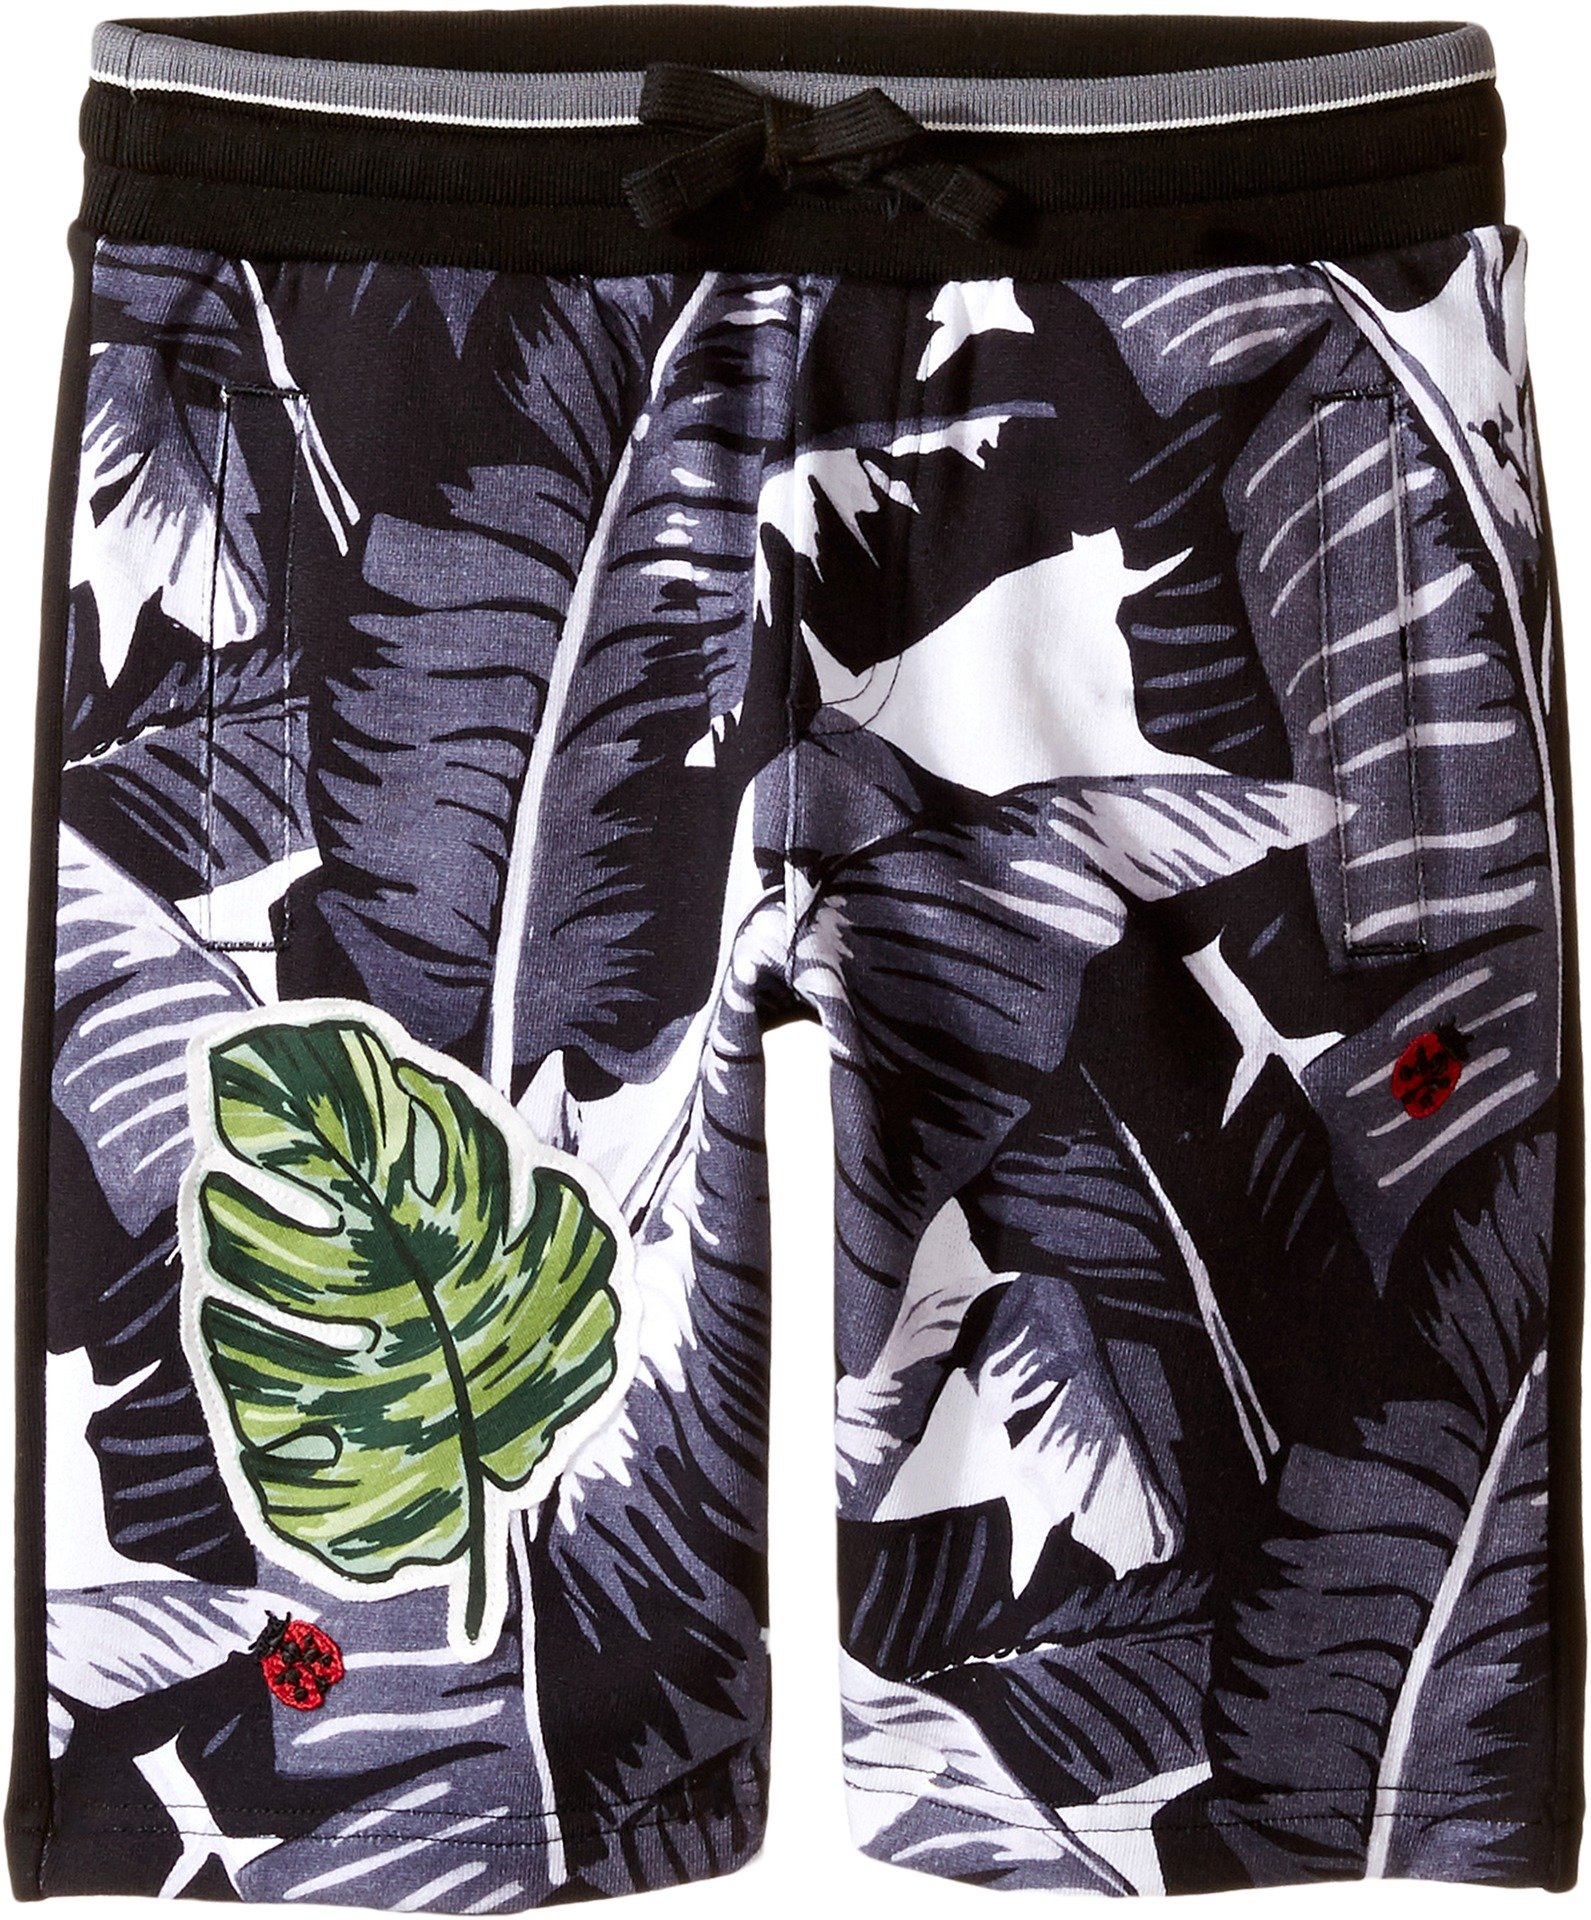 Dolce & Gabbana Kids Baby Boy's Banana Leaf Shorts (Toddler/Little Kids) Black Shorts by Dolce & Gabbana